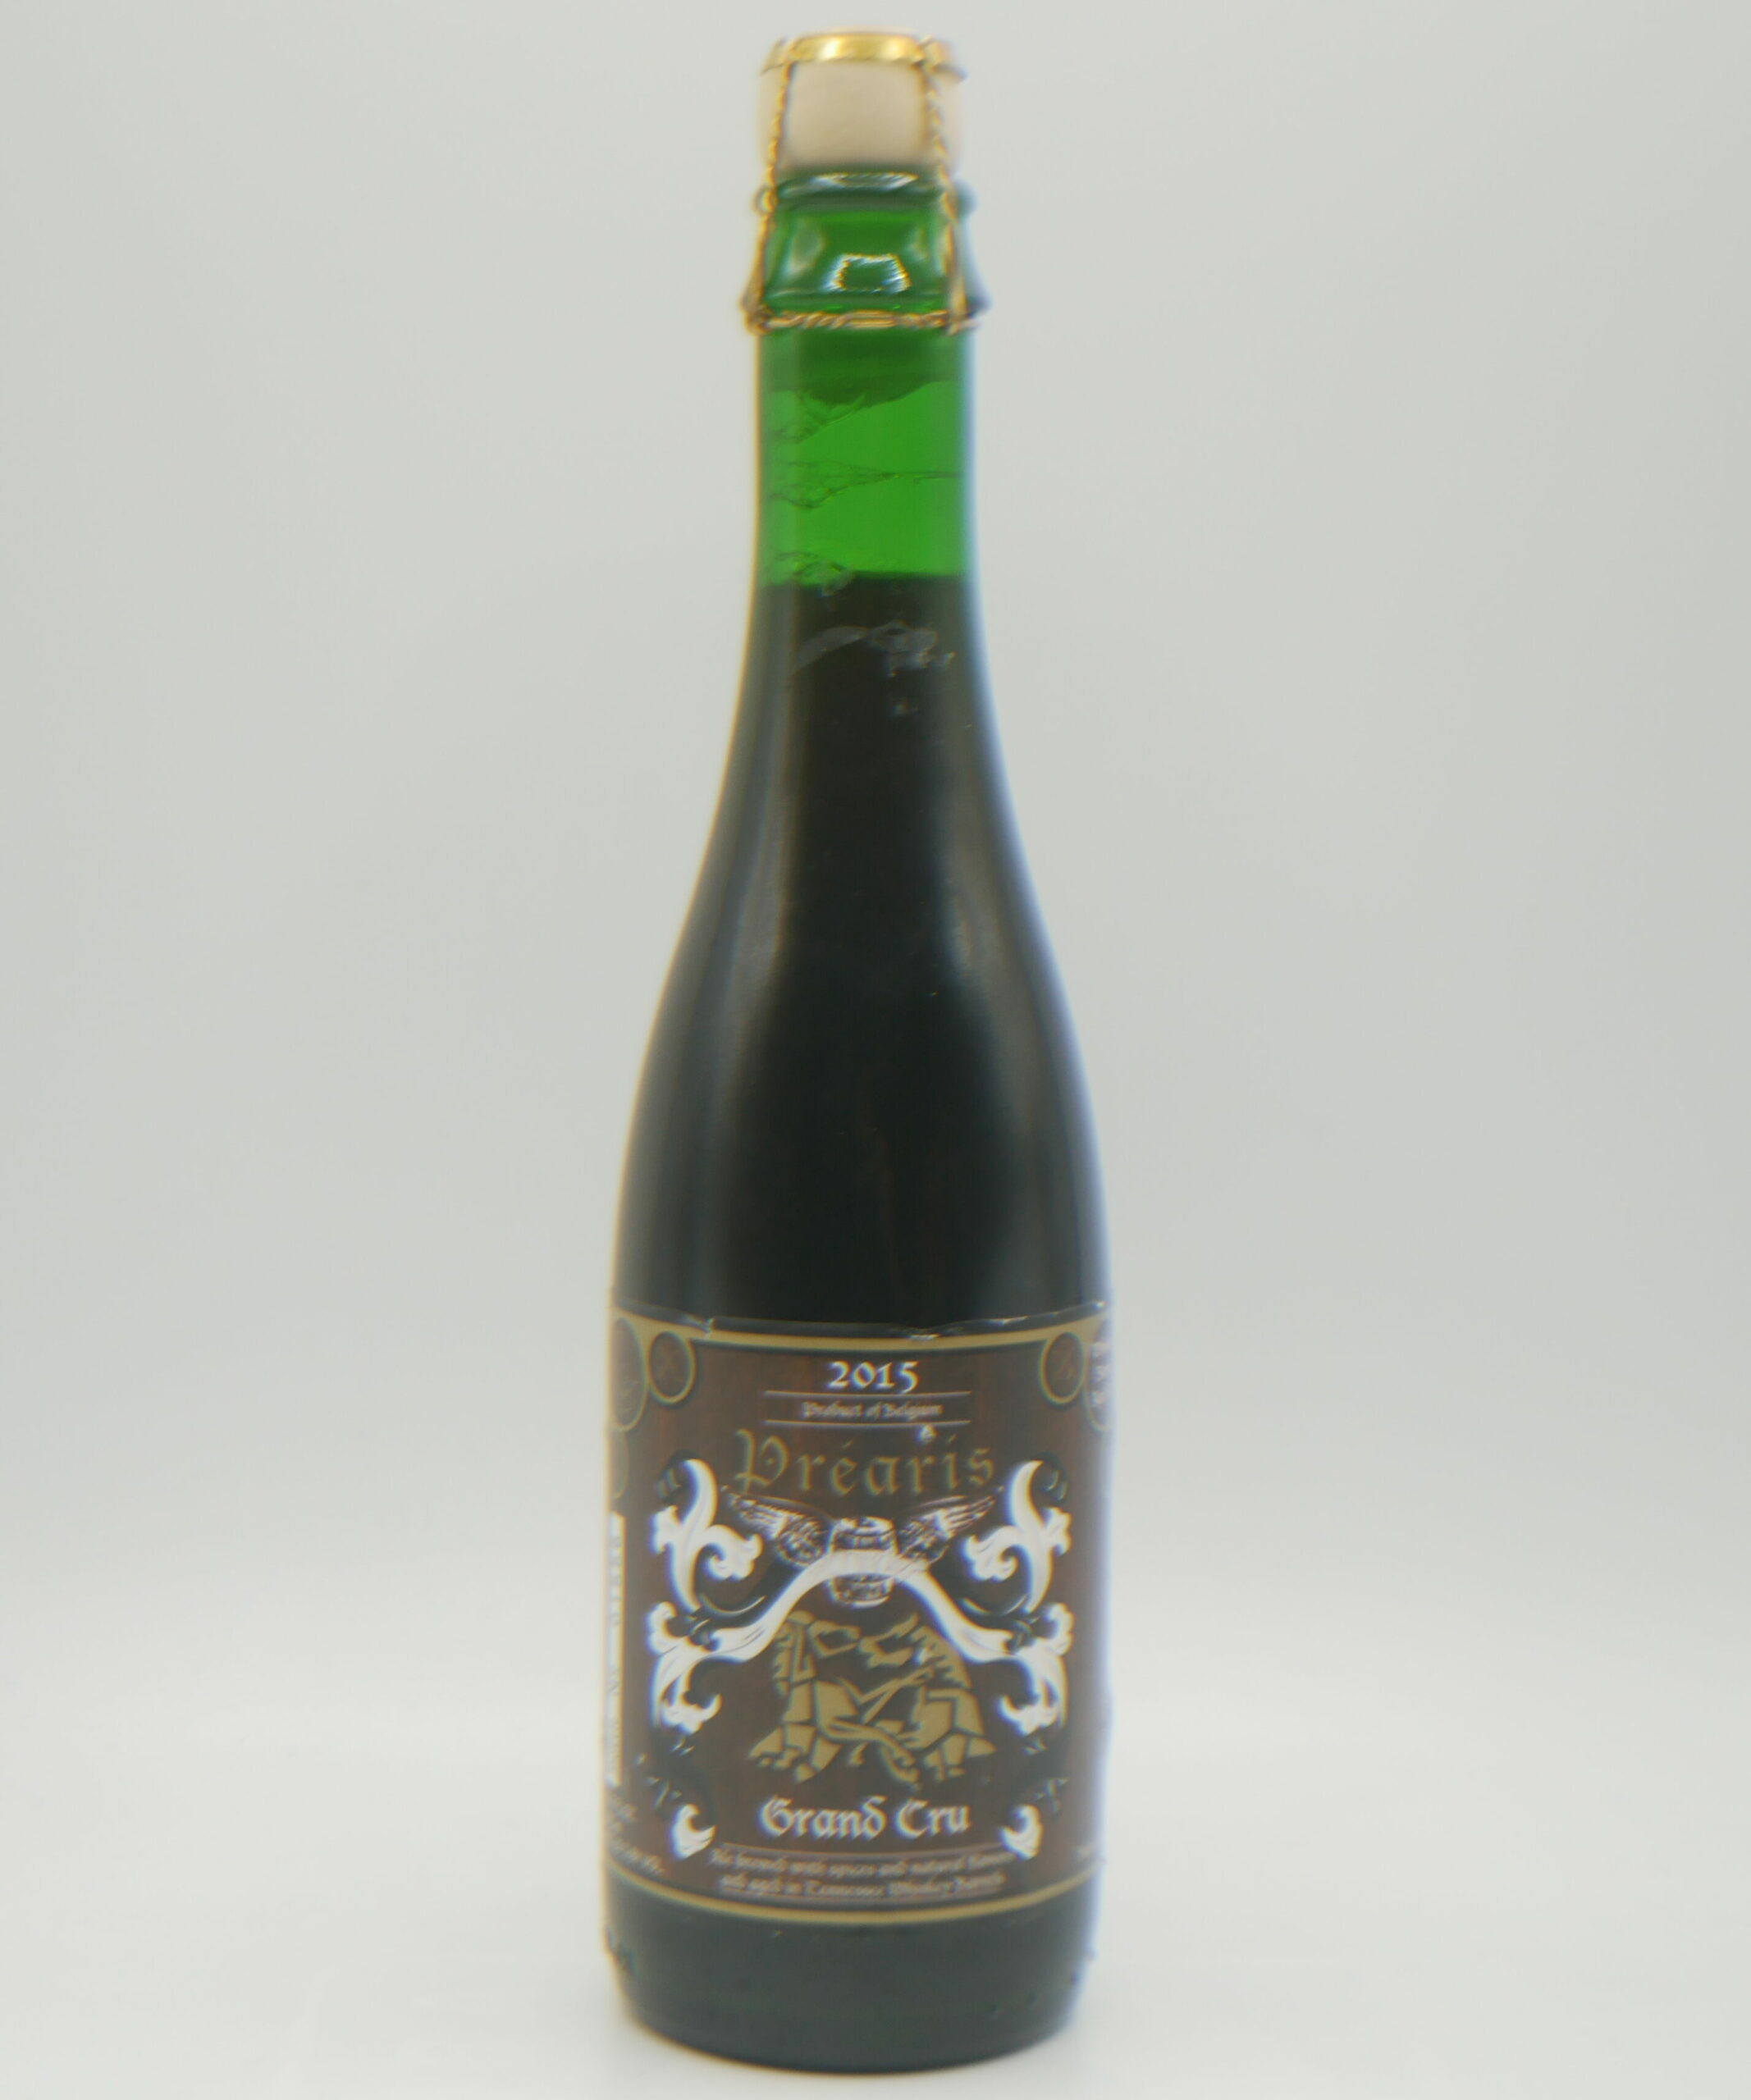 Image Prearis Grand Cru Whisky Barrel Aged bbf 2019